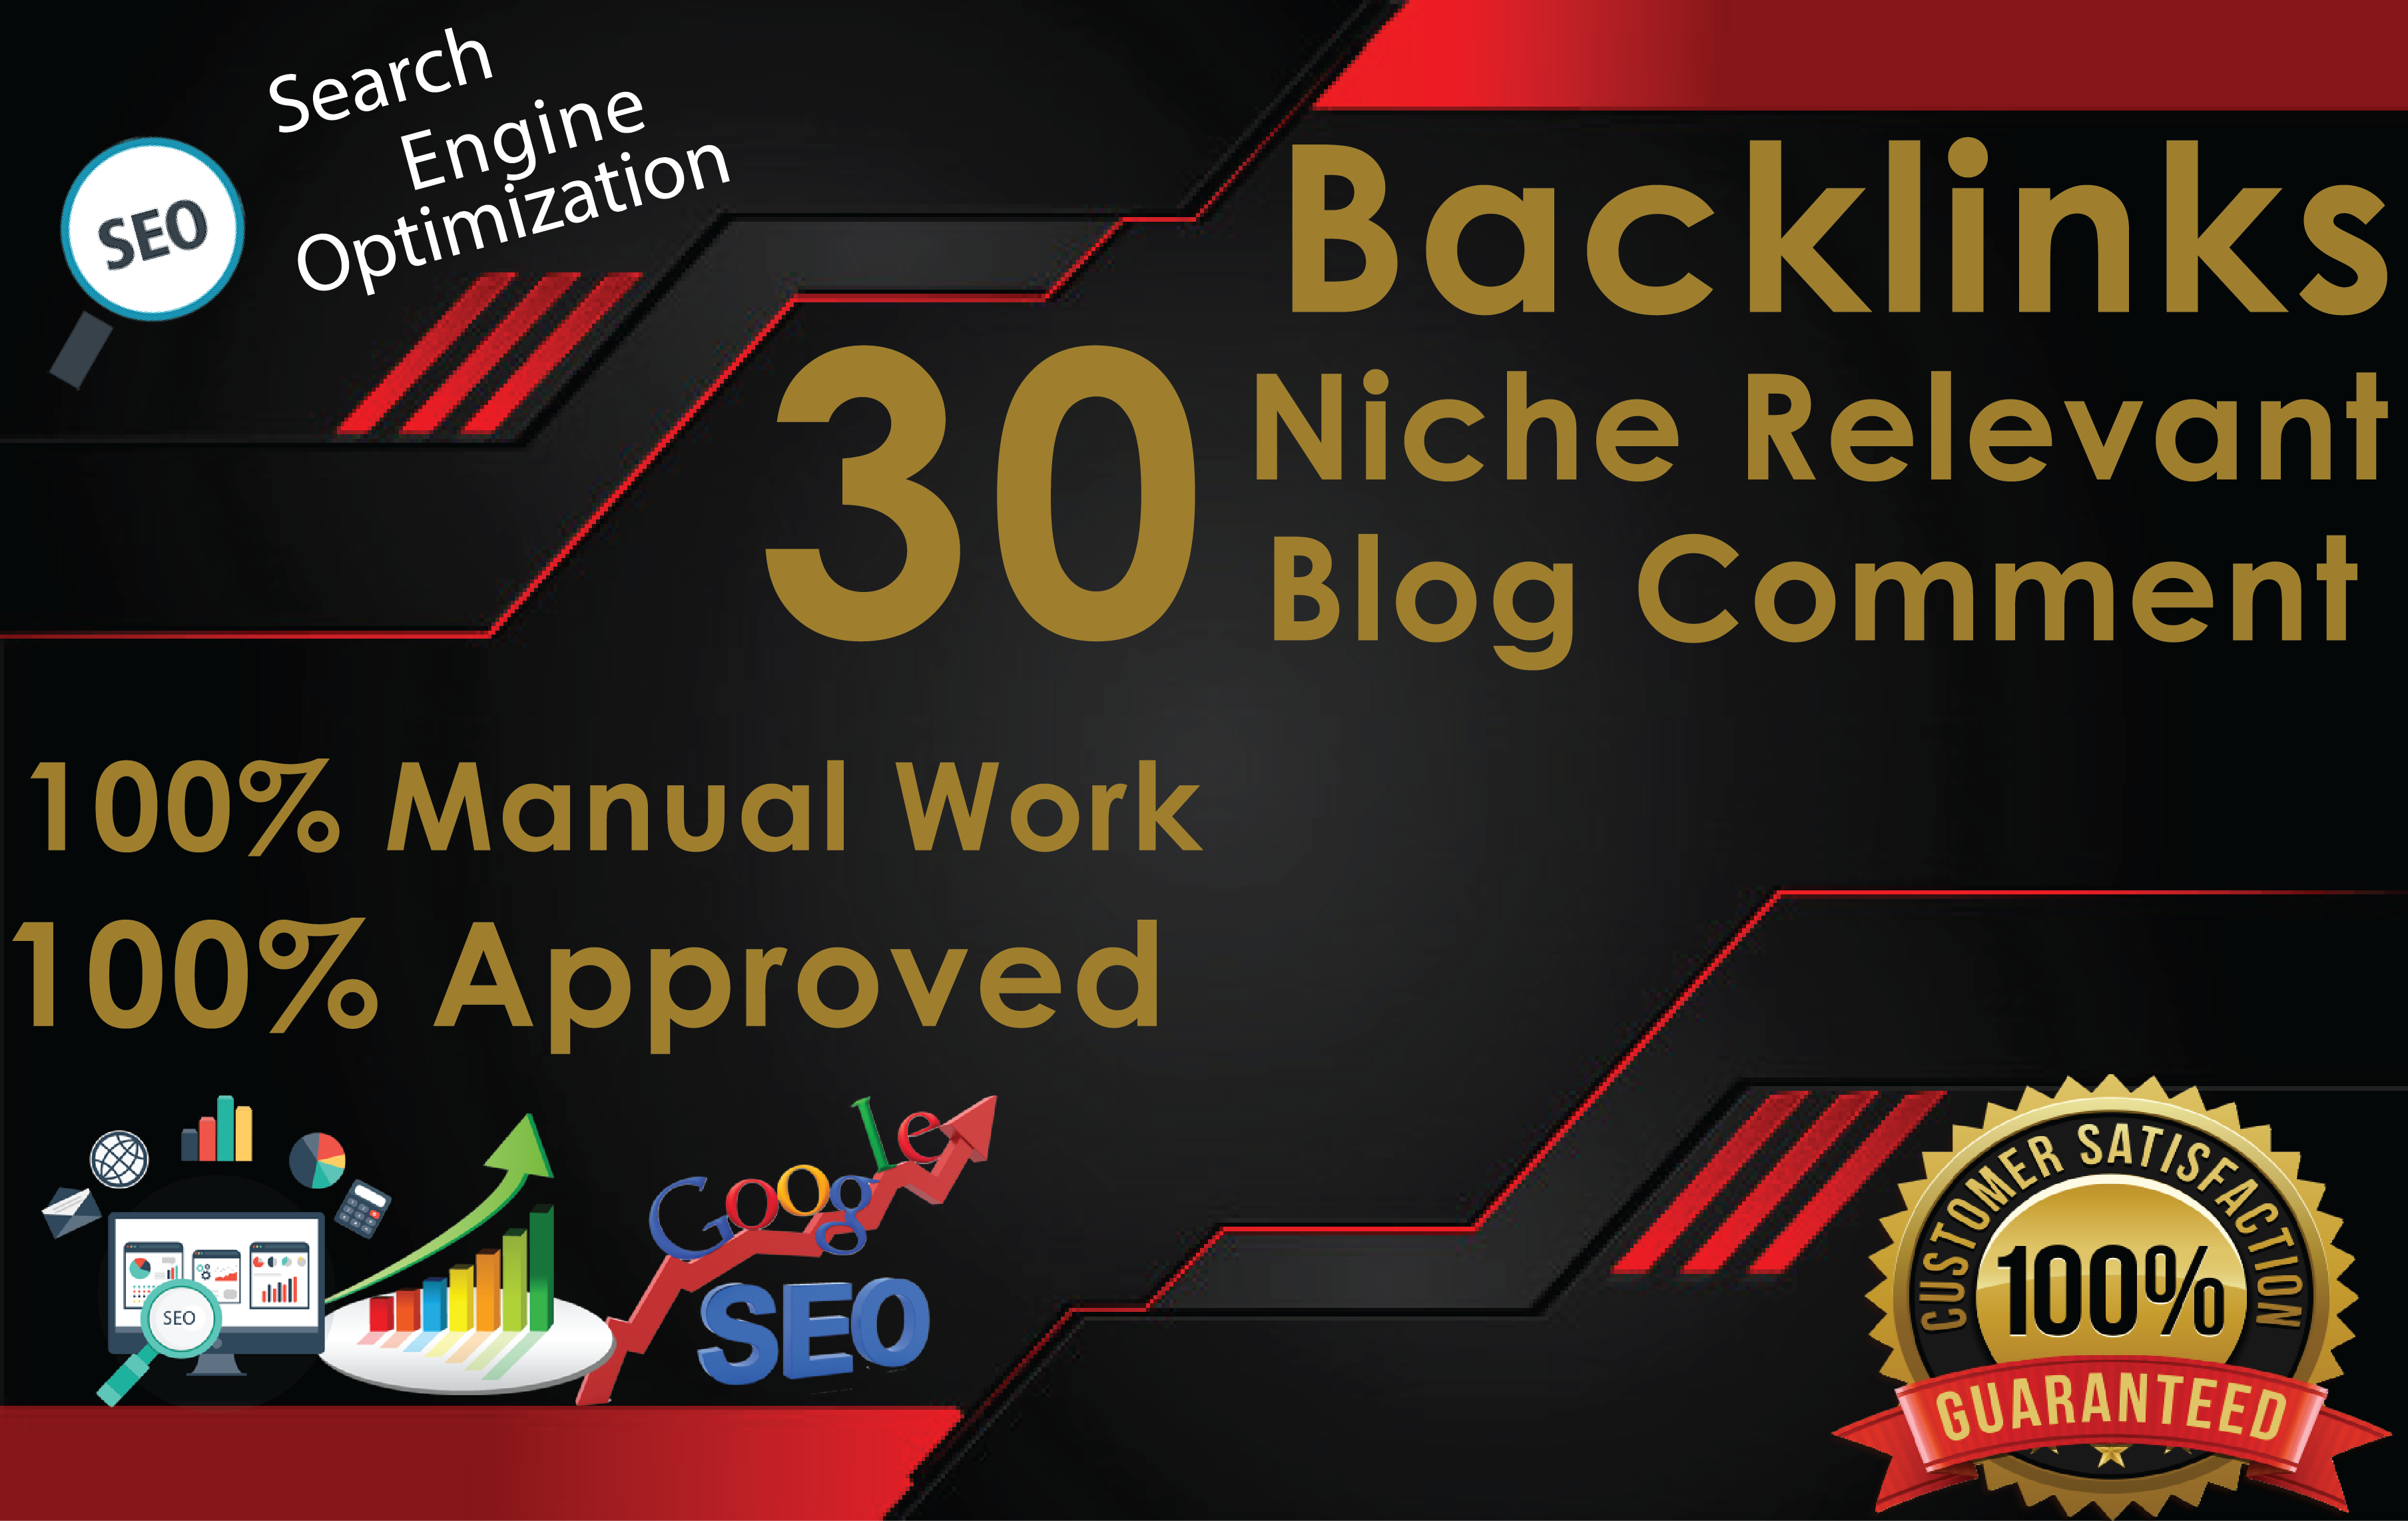 I will create 30 niche relevant blog comments backlinks high quality